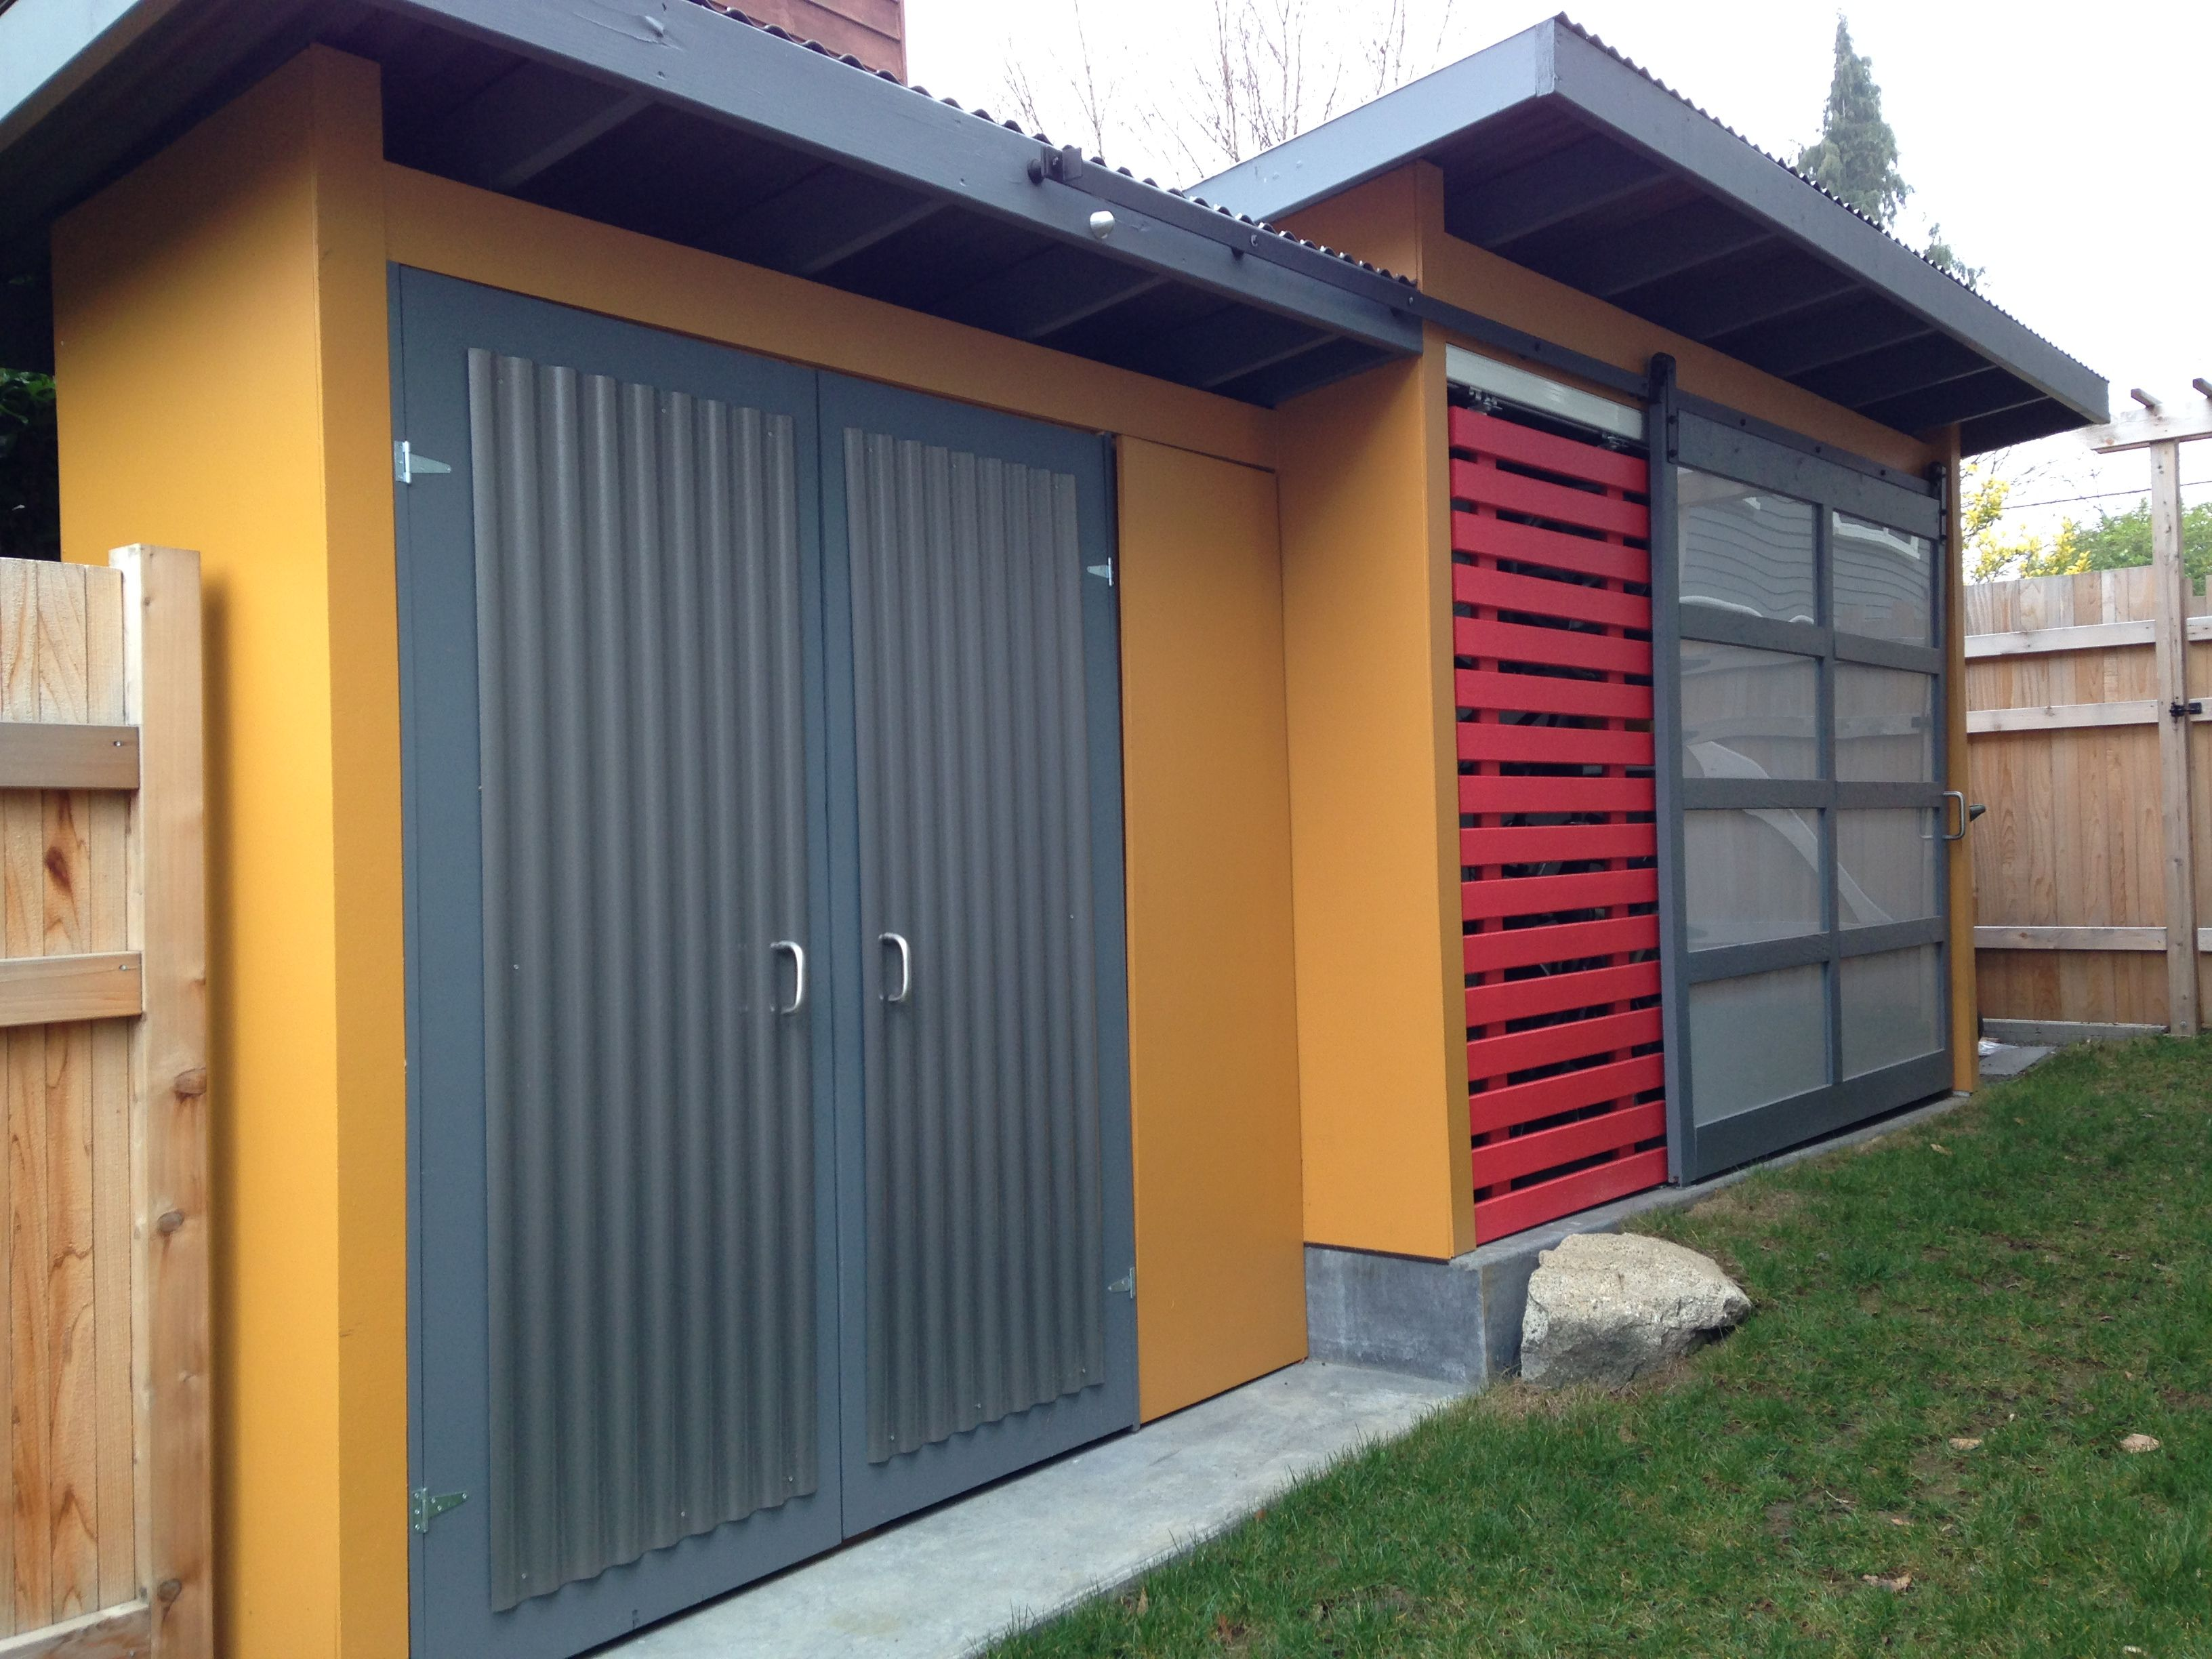 Beautiful Storage Shed In Side Yard Of Hardy Tropical Garden Has Rolling Barn Doors  For Easy Access. Depth Is Staggered To Reduce The Impact Of The Size In The  Narrow ...